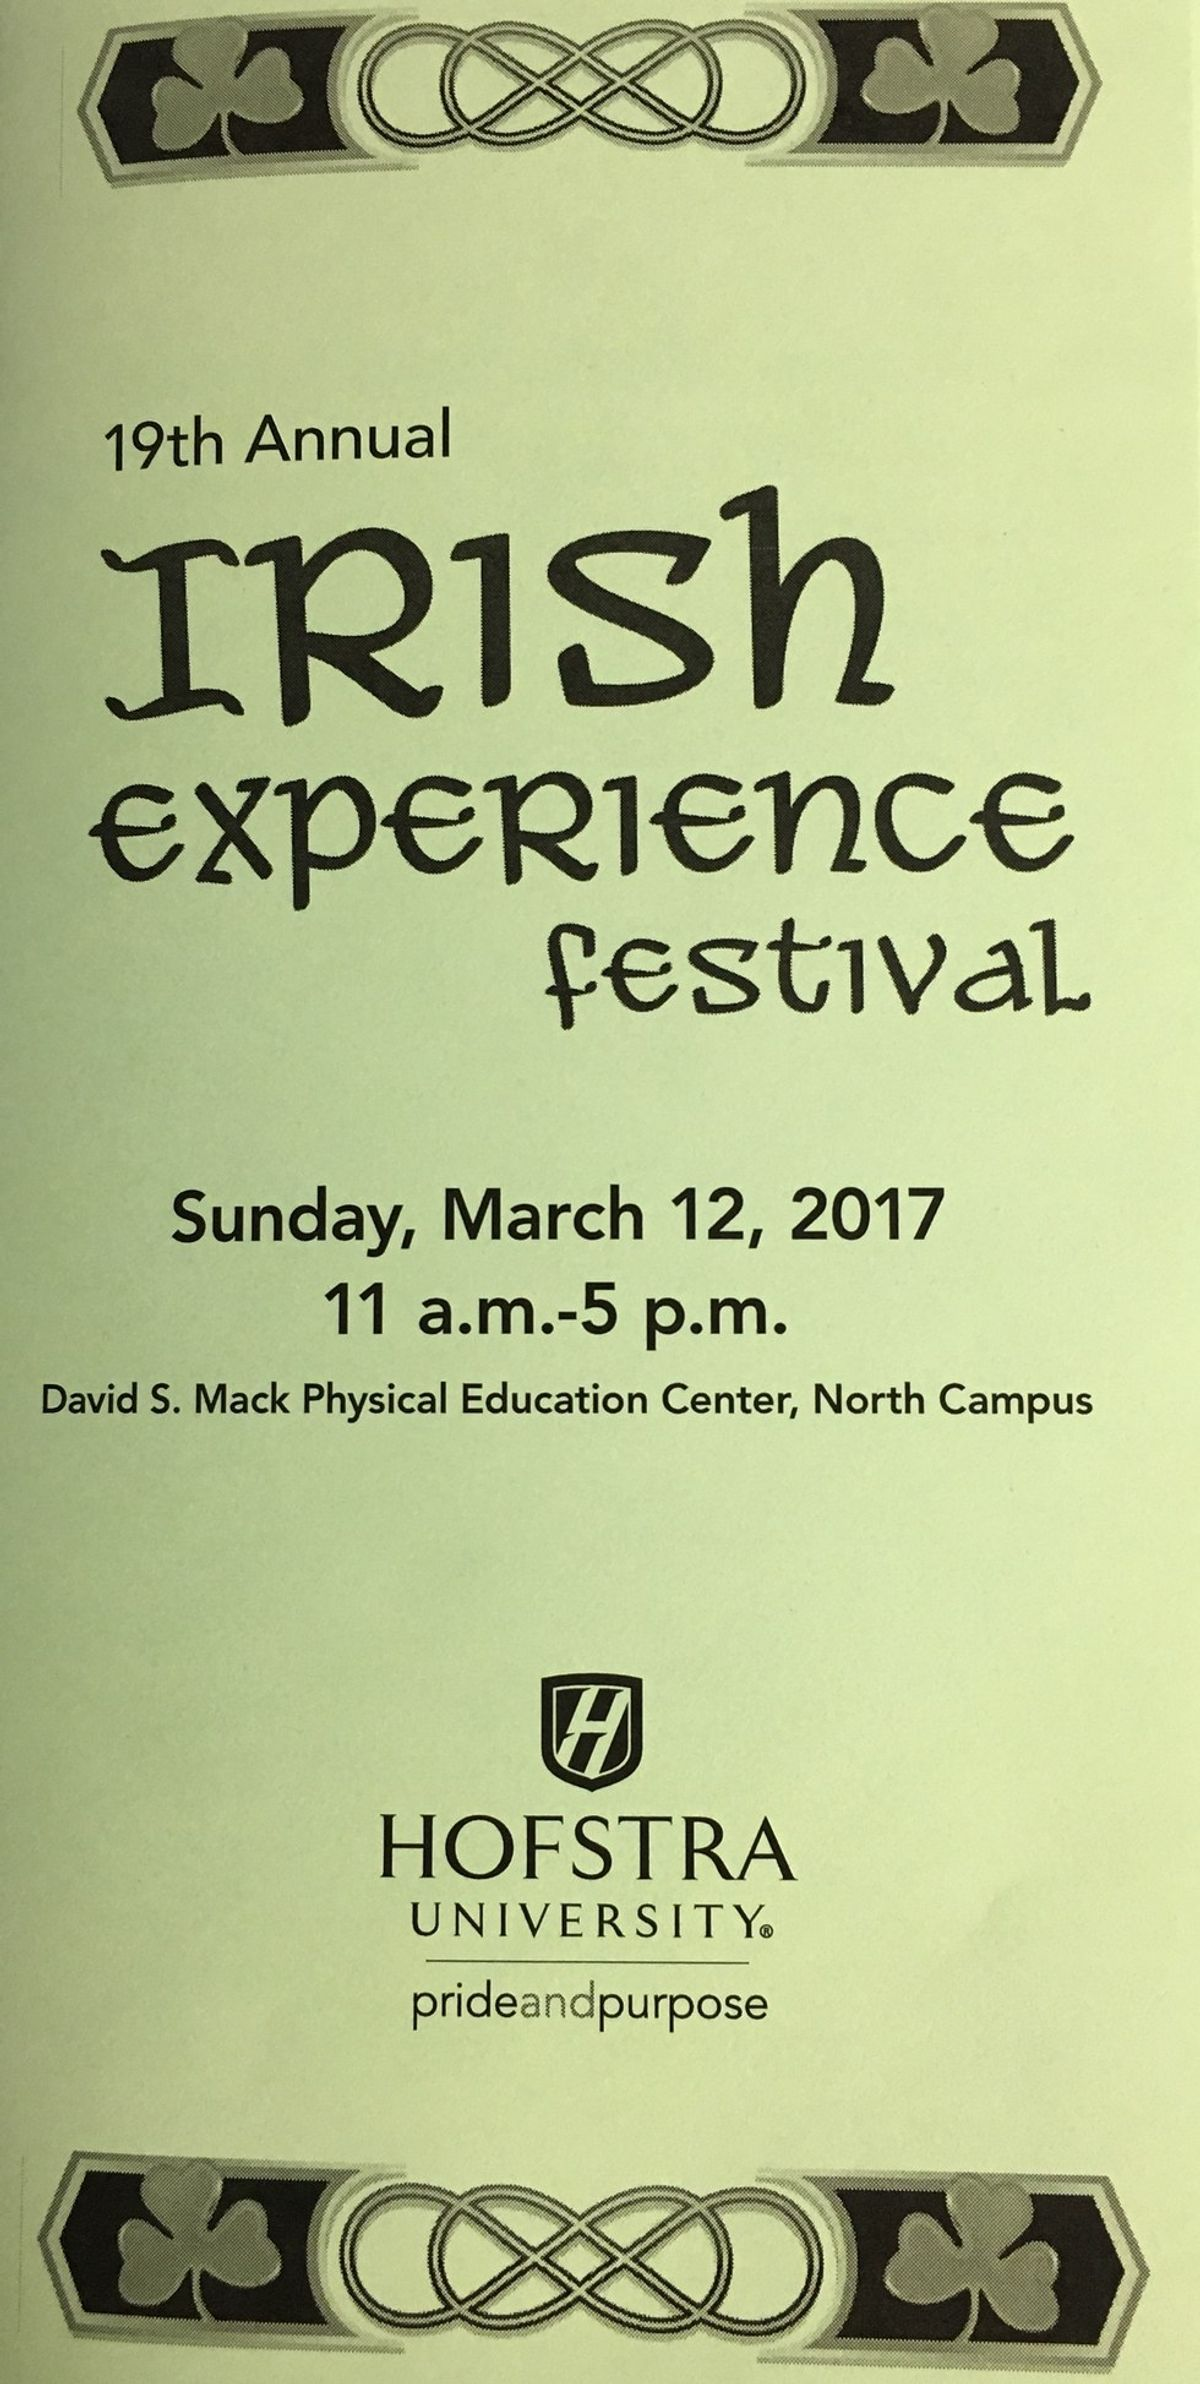 Hofstra University's 19th Annual Irish Experience Festival